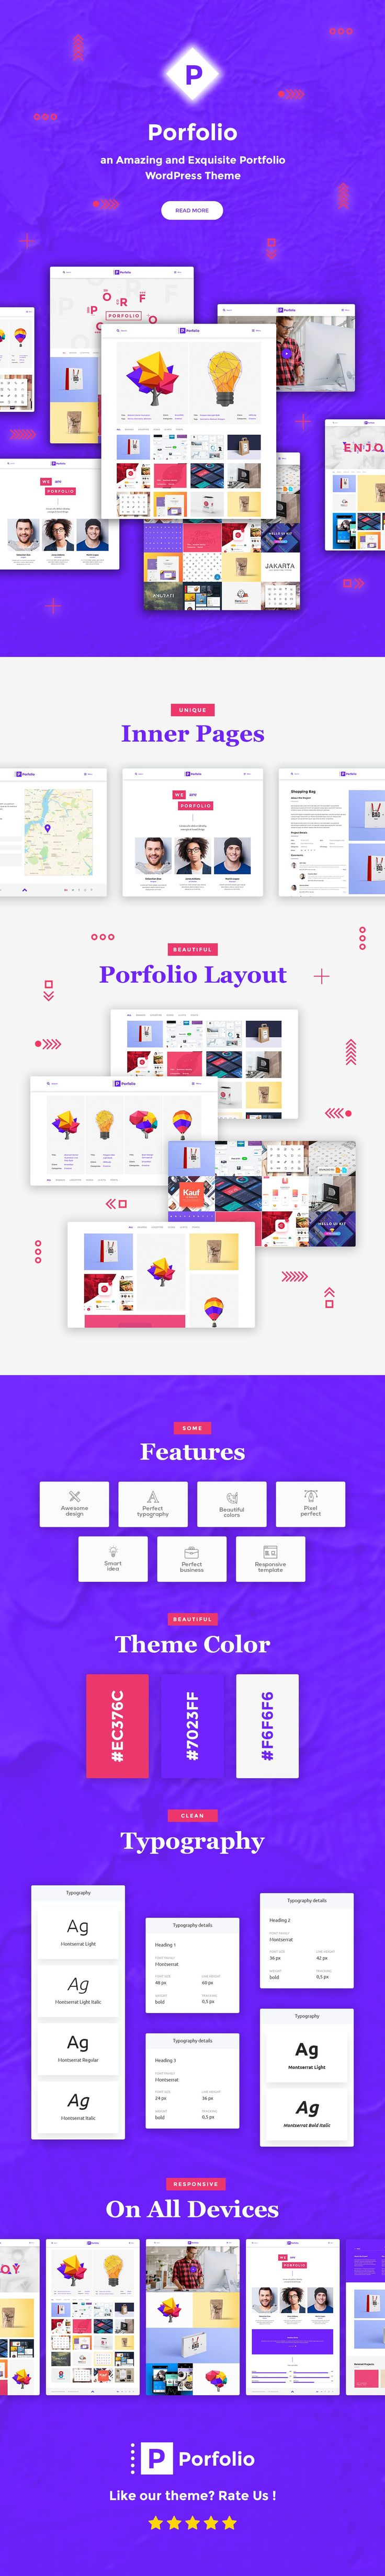 Porfolio - Creative Agency & Personal Portfolio WordPress Theme #minimal #modern #personal portfolio • Download ➝ https://themeforest.net/item/porfolio-creative-agency-personal-portfolio-wordpress-theme/20311160?ref=rabosch